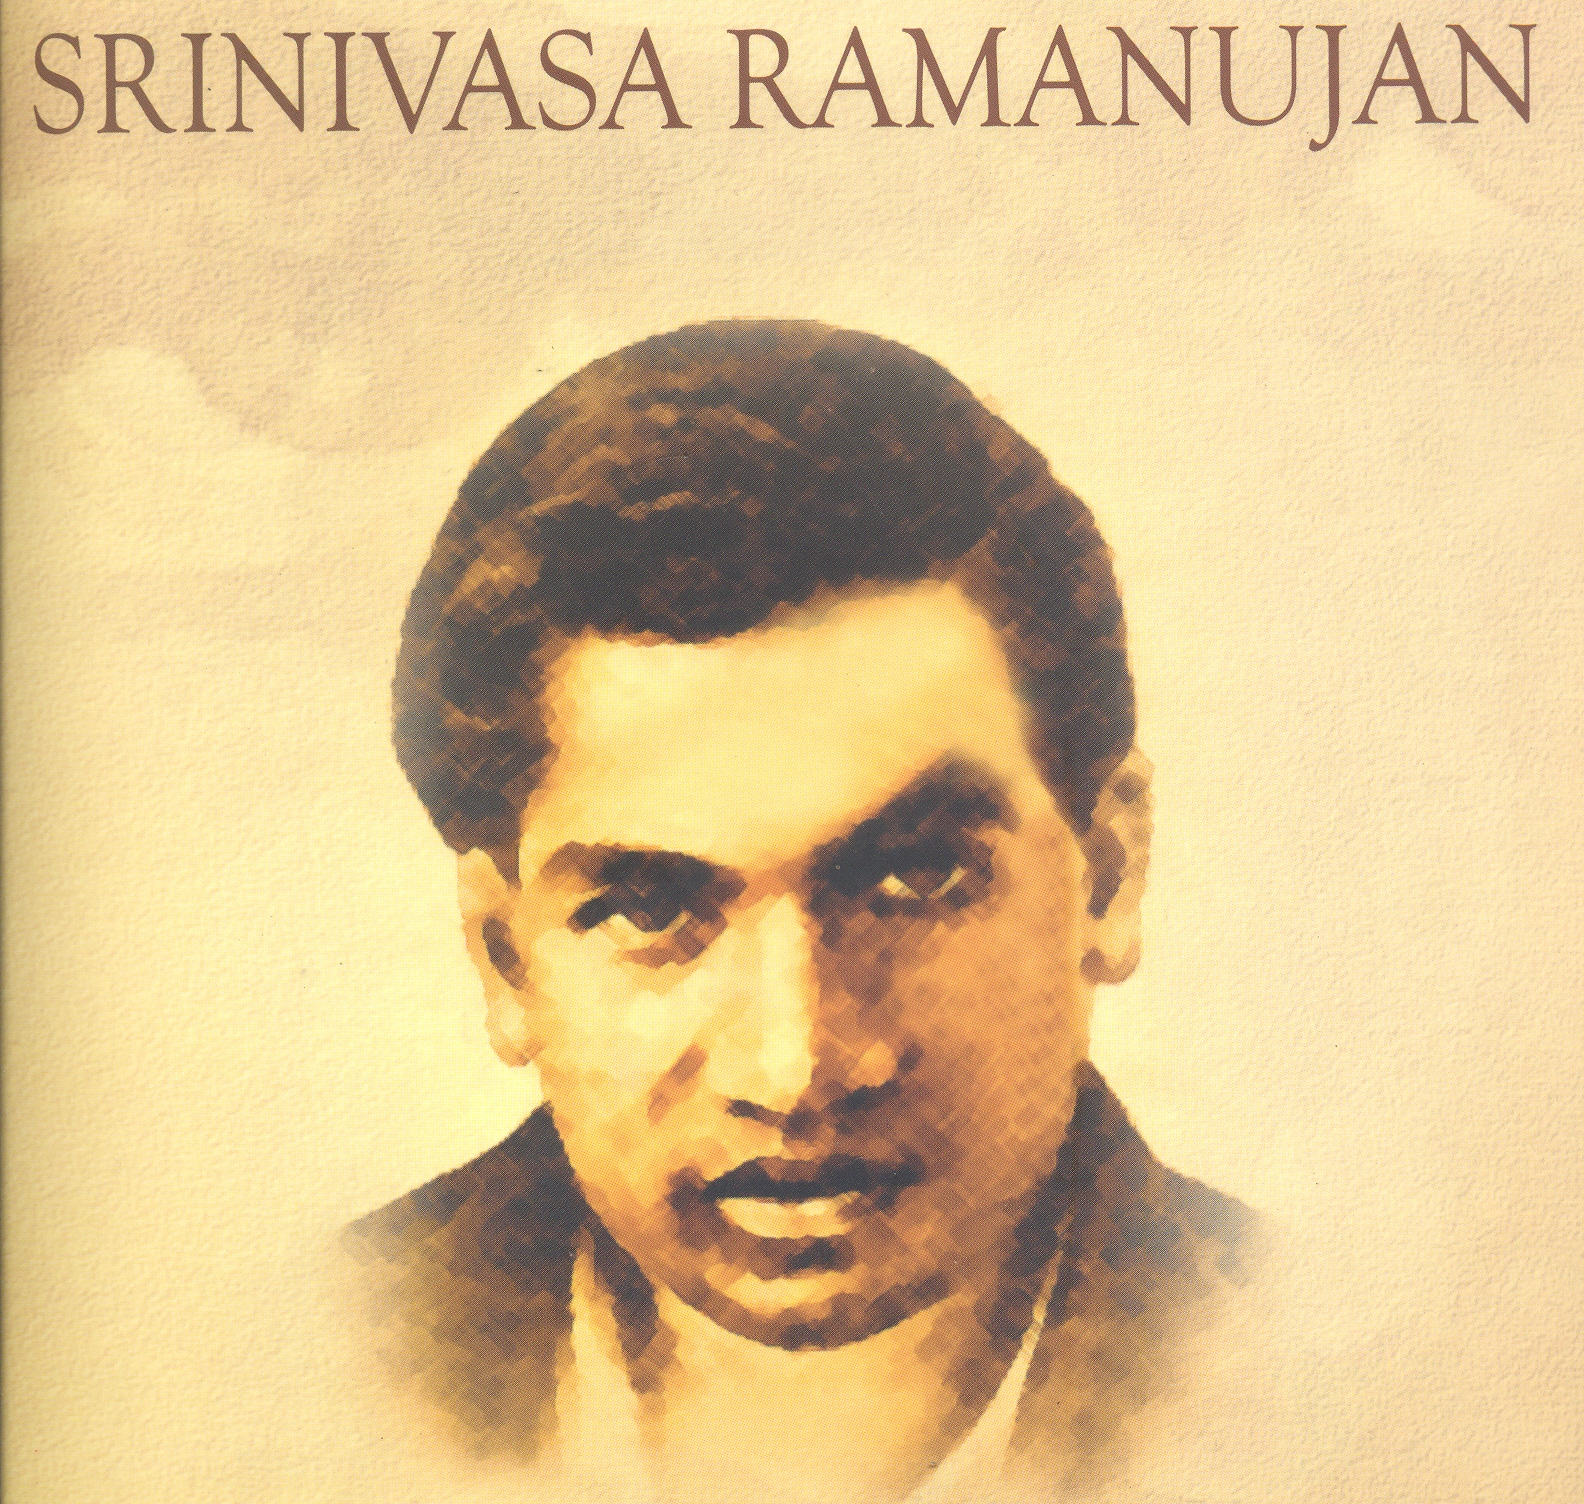 Srinivasa ramanujan biography in english